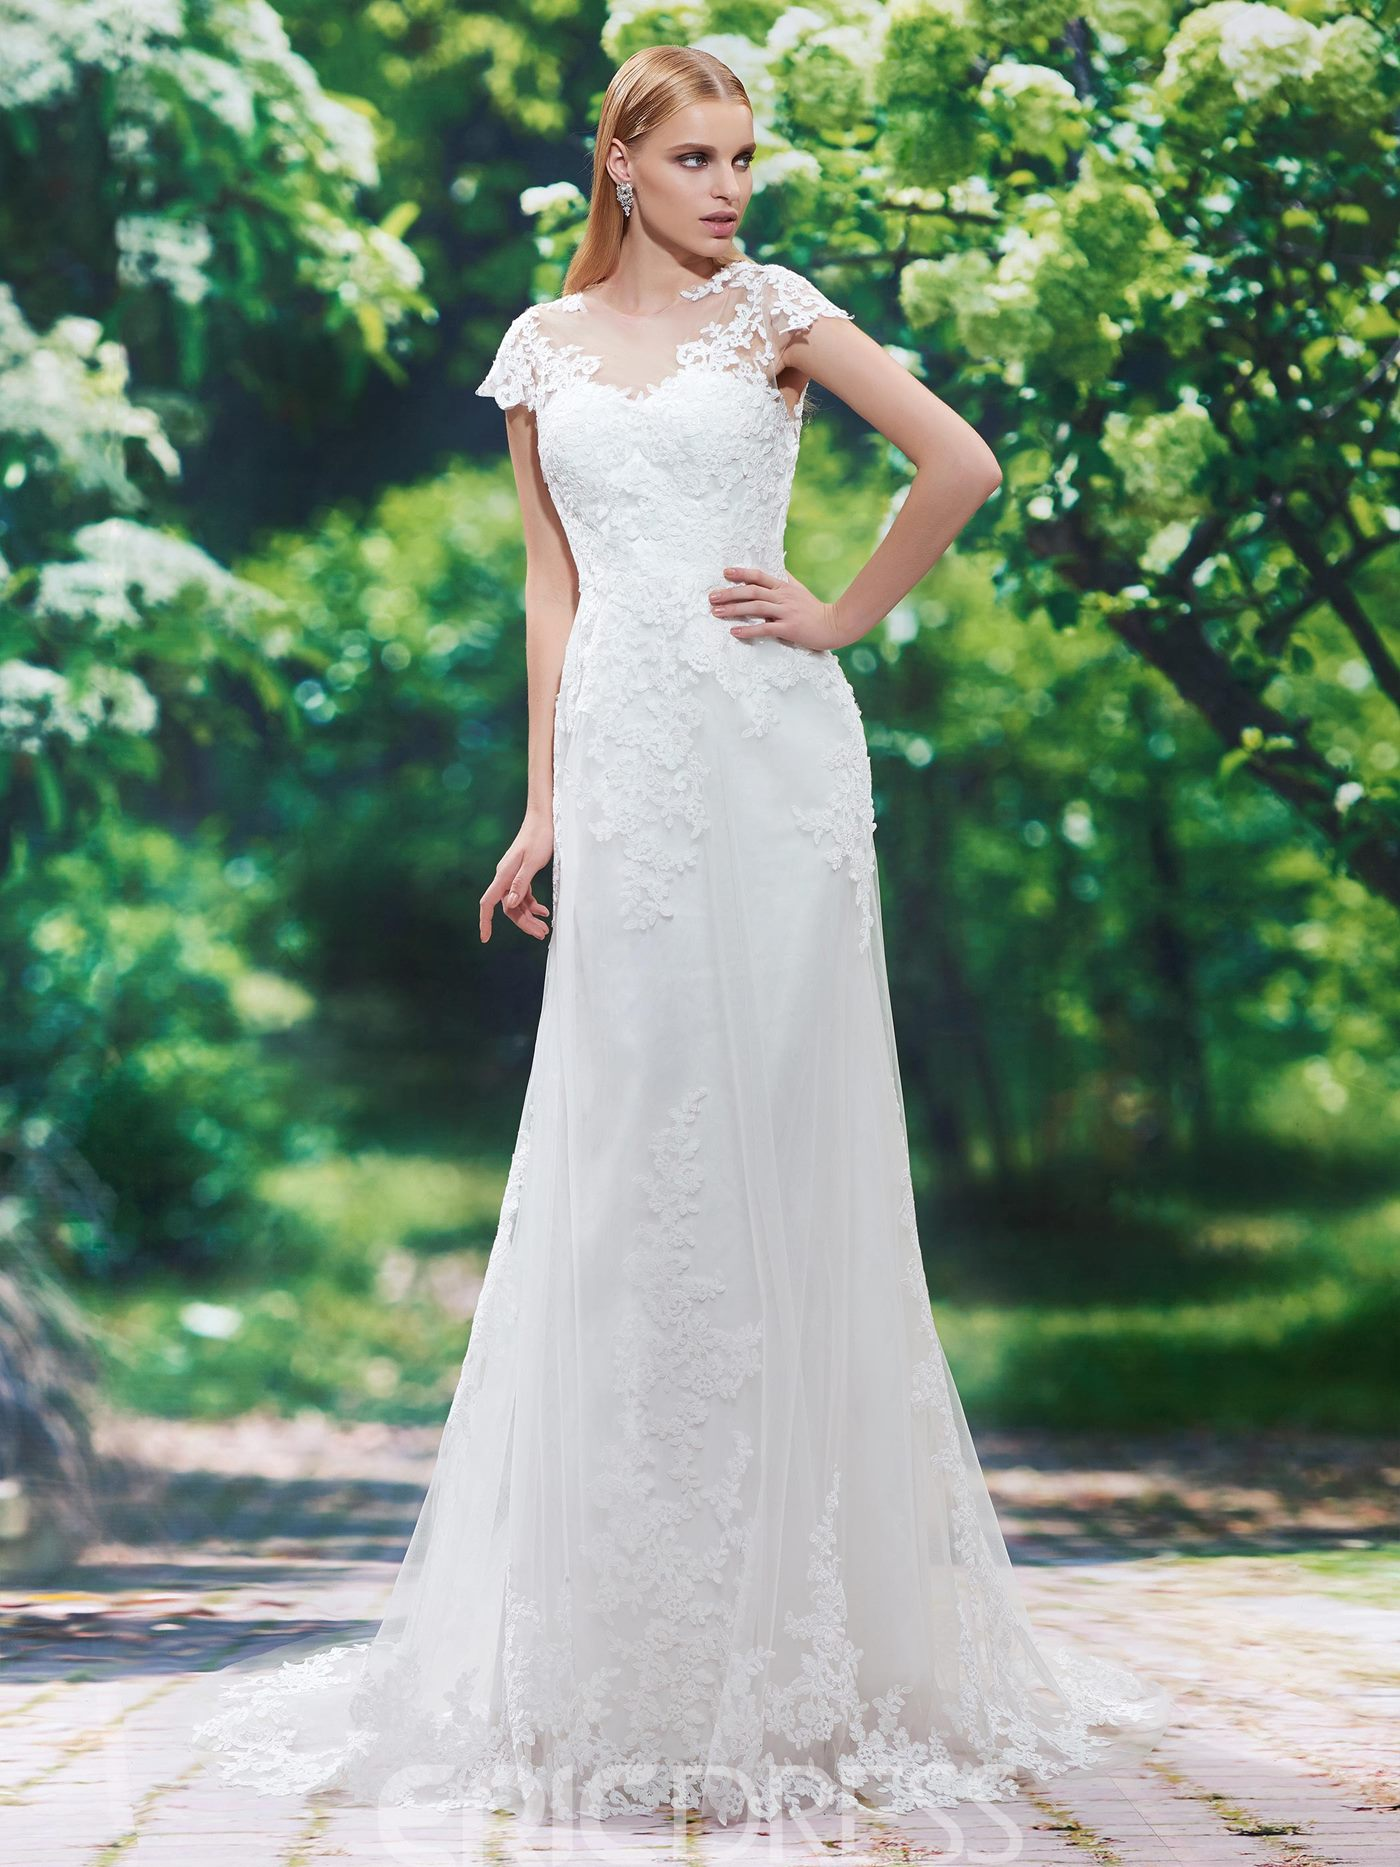 Ericdress Beautiful Jewel Cap Sleeves Appliques Sheath Wedding Dress